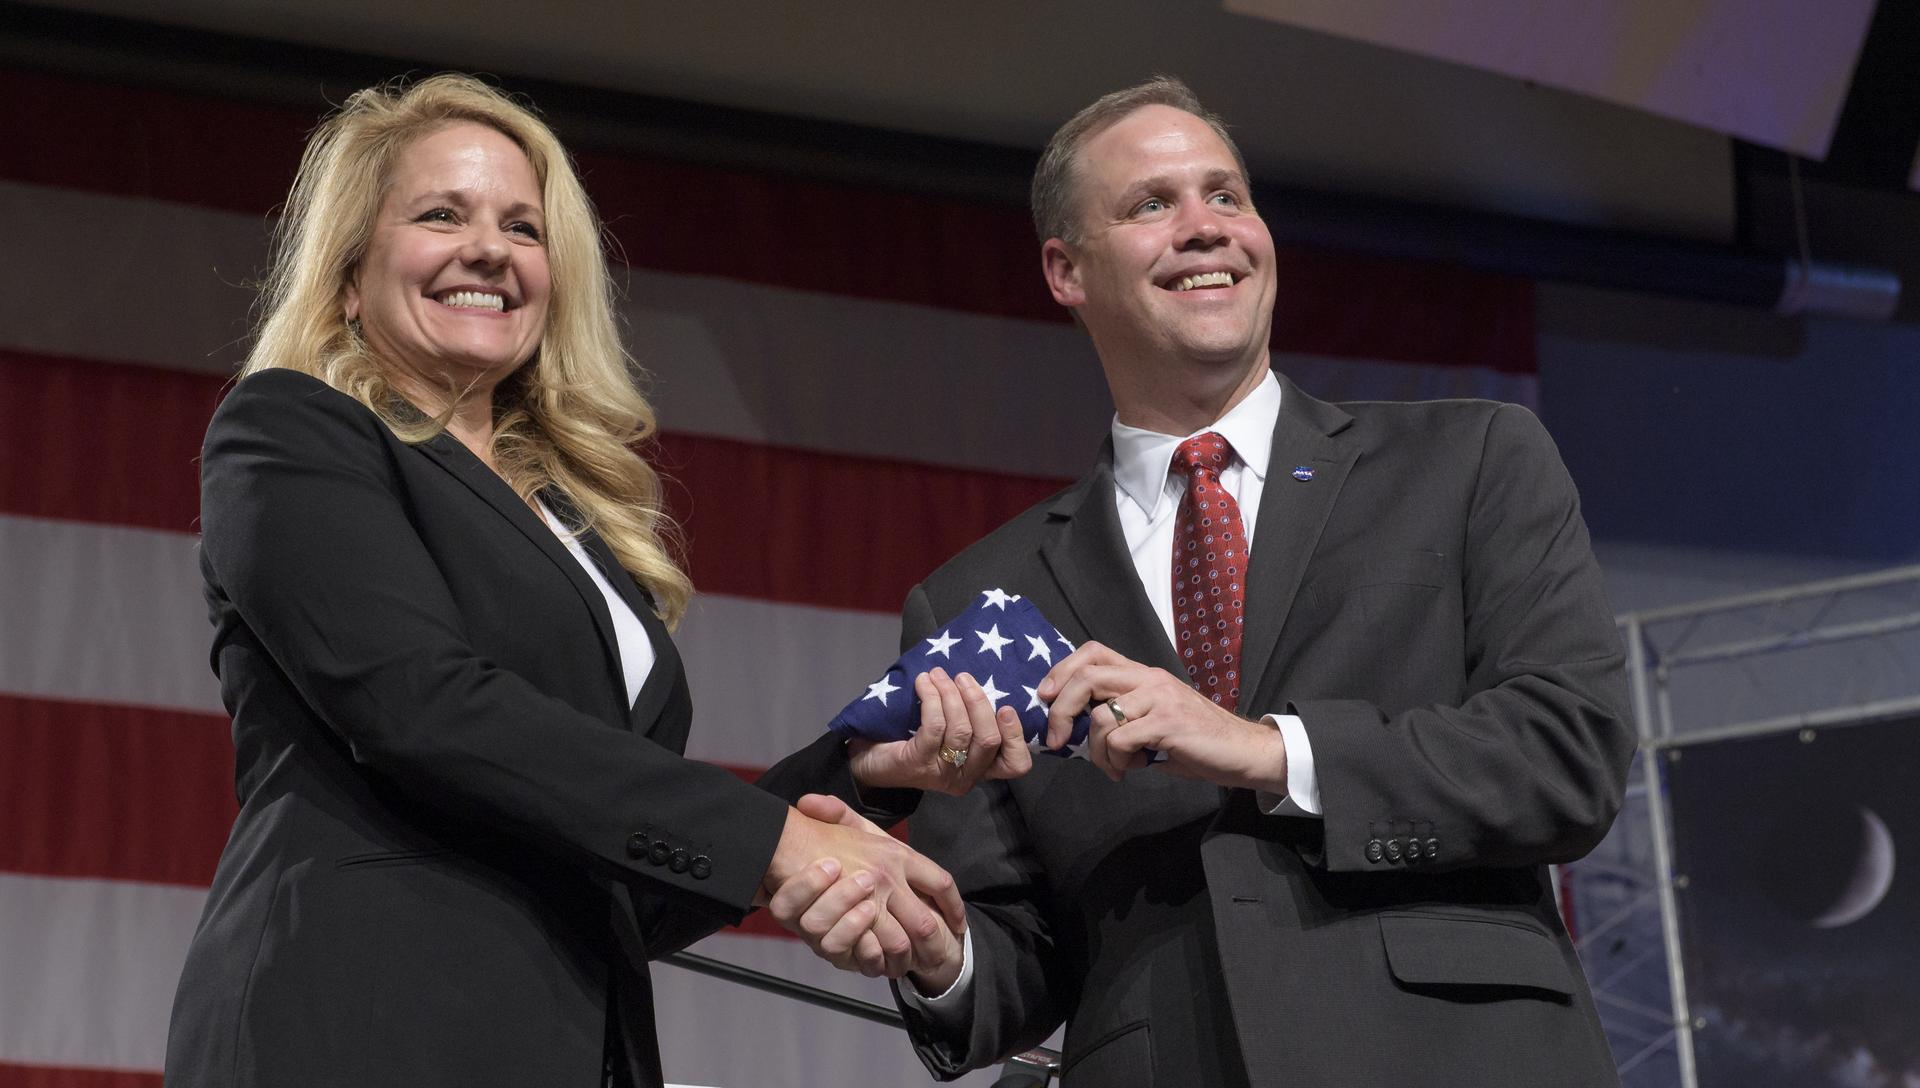 SpaceX President and COO Gwynne Shotwell receives an American flag from NASA Administrator Jim Bridenstine during a NASA event in Houston to announce astronaut crews.